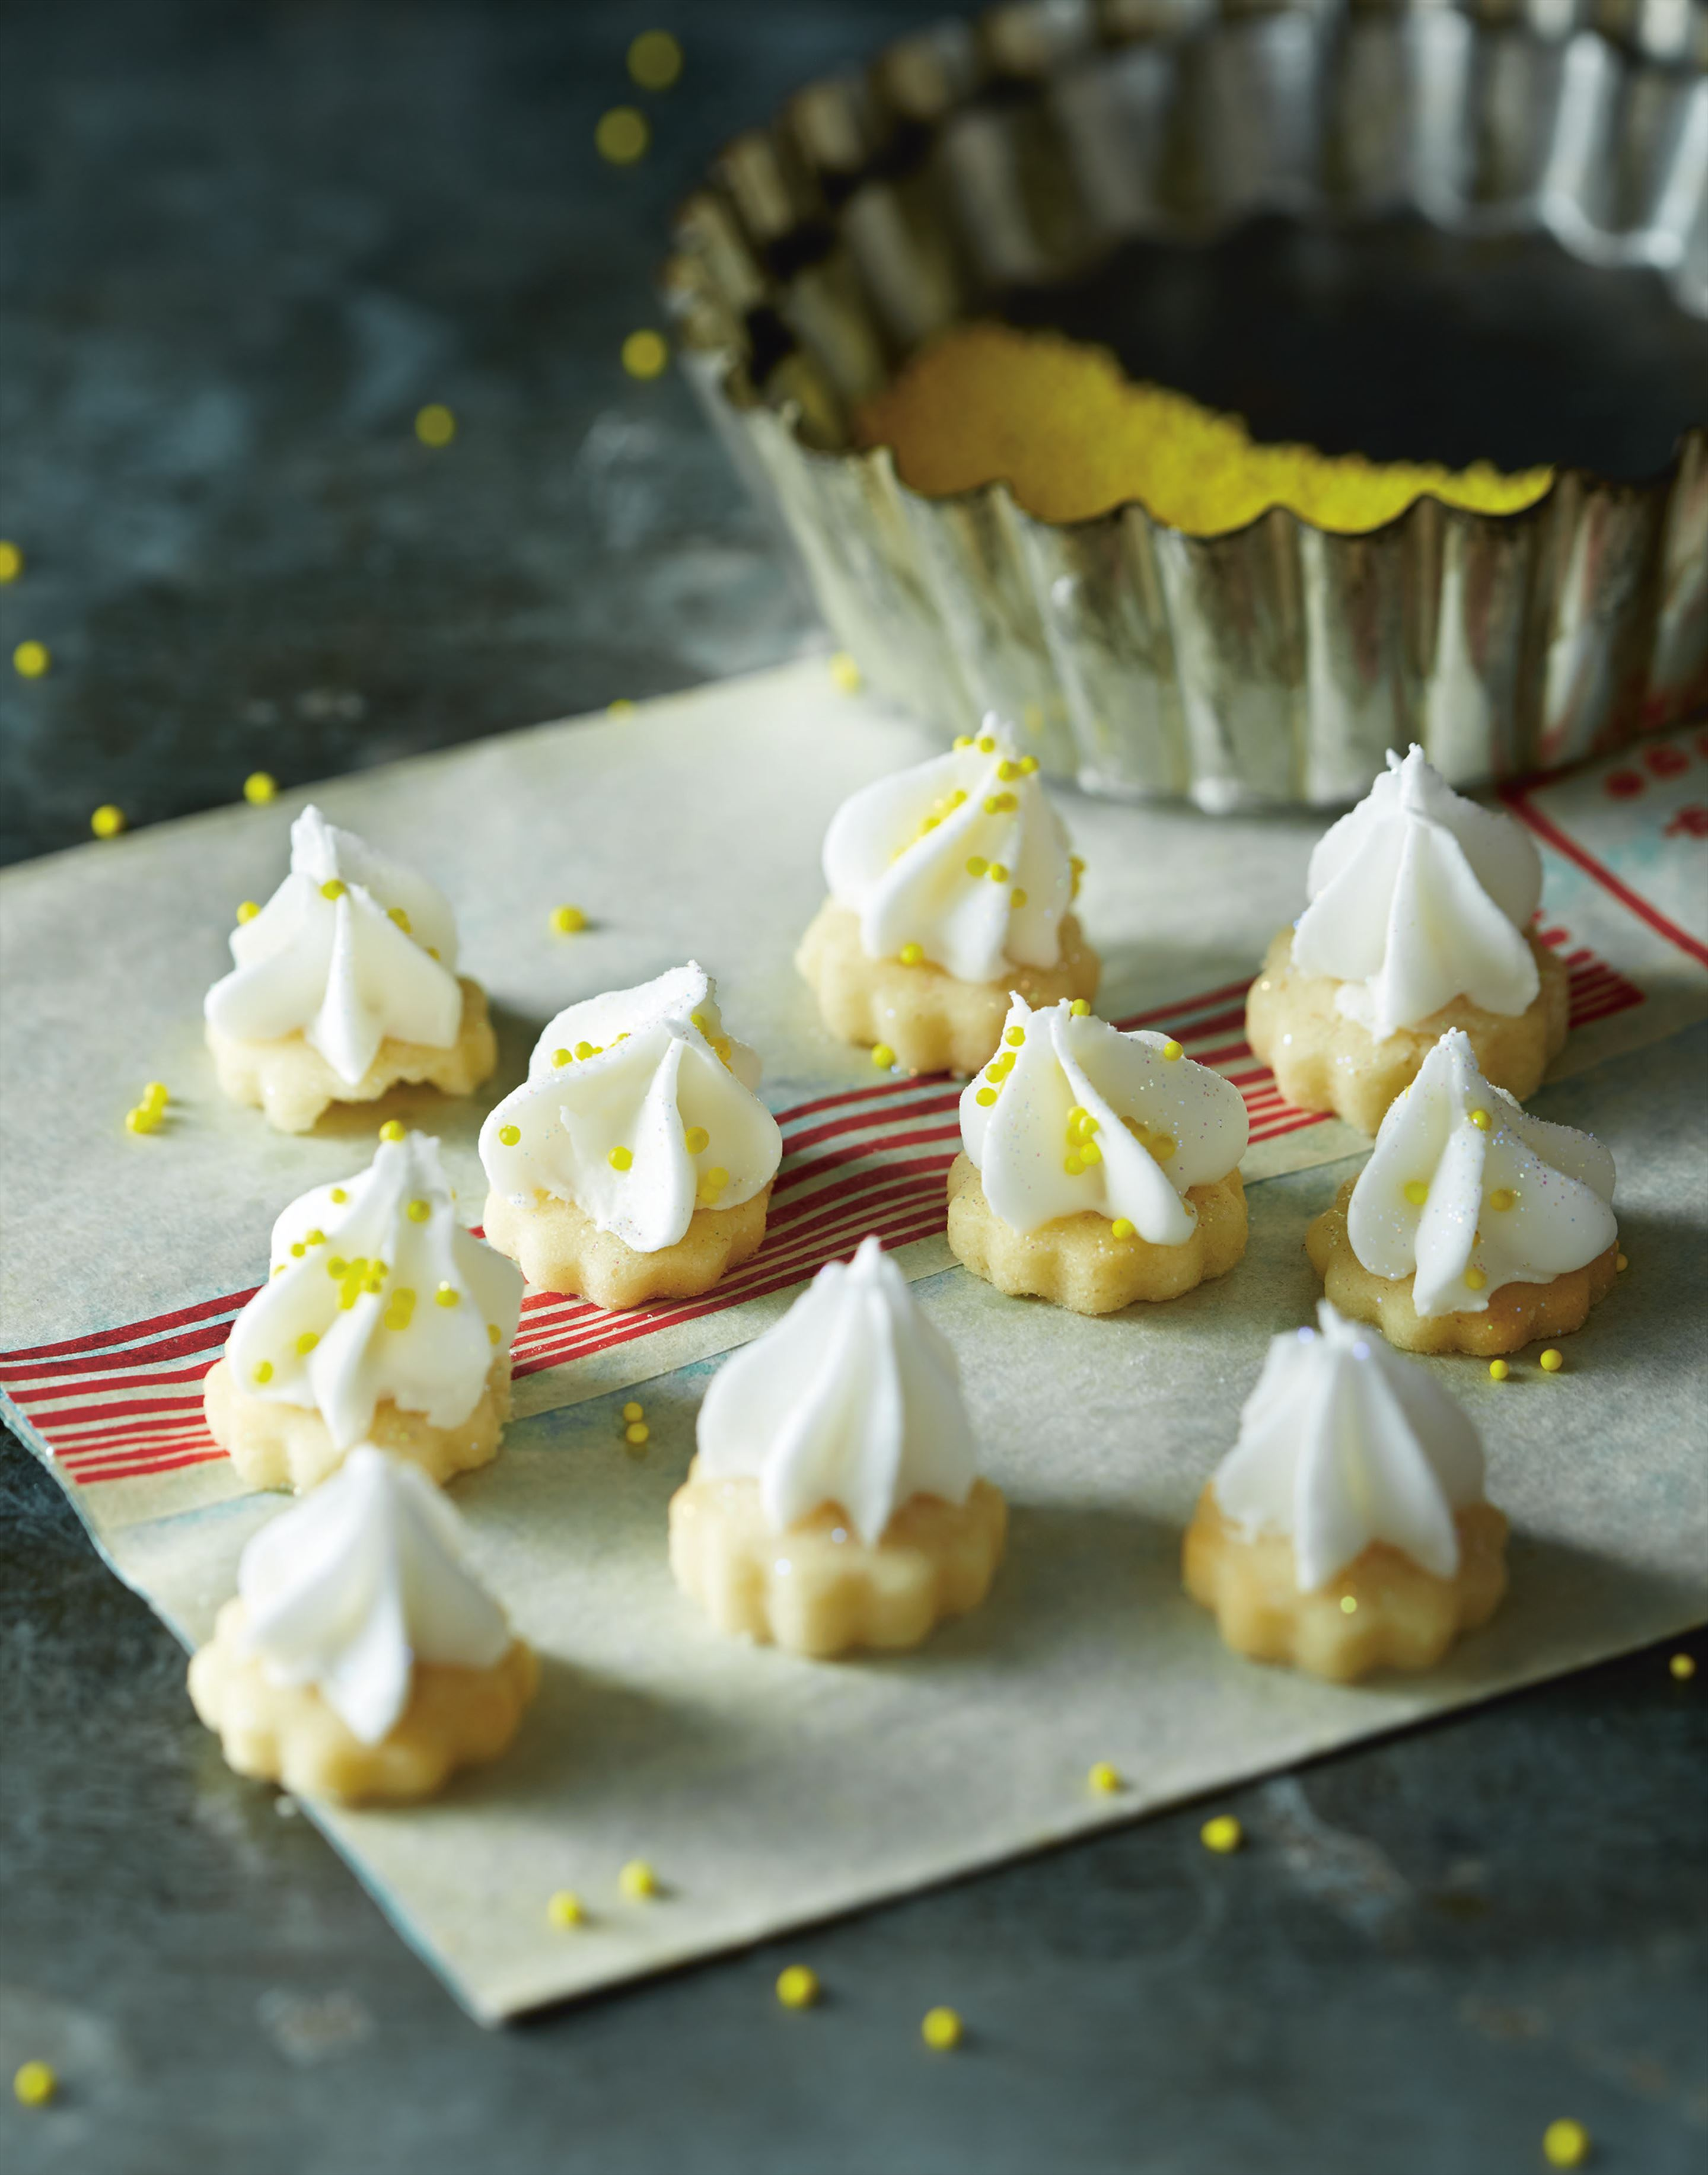 Tiny lemon meringue pie cookies